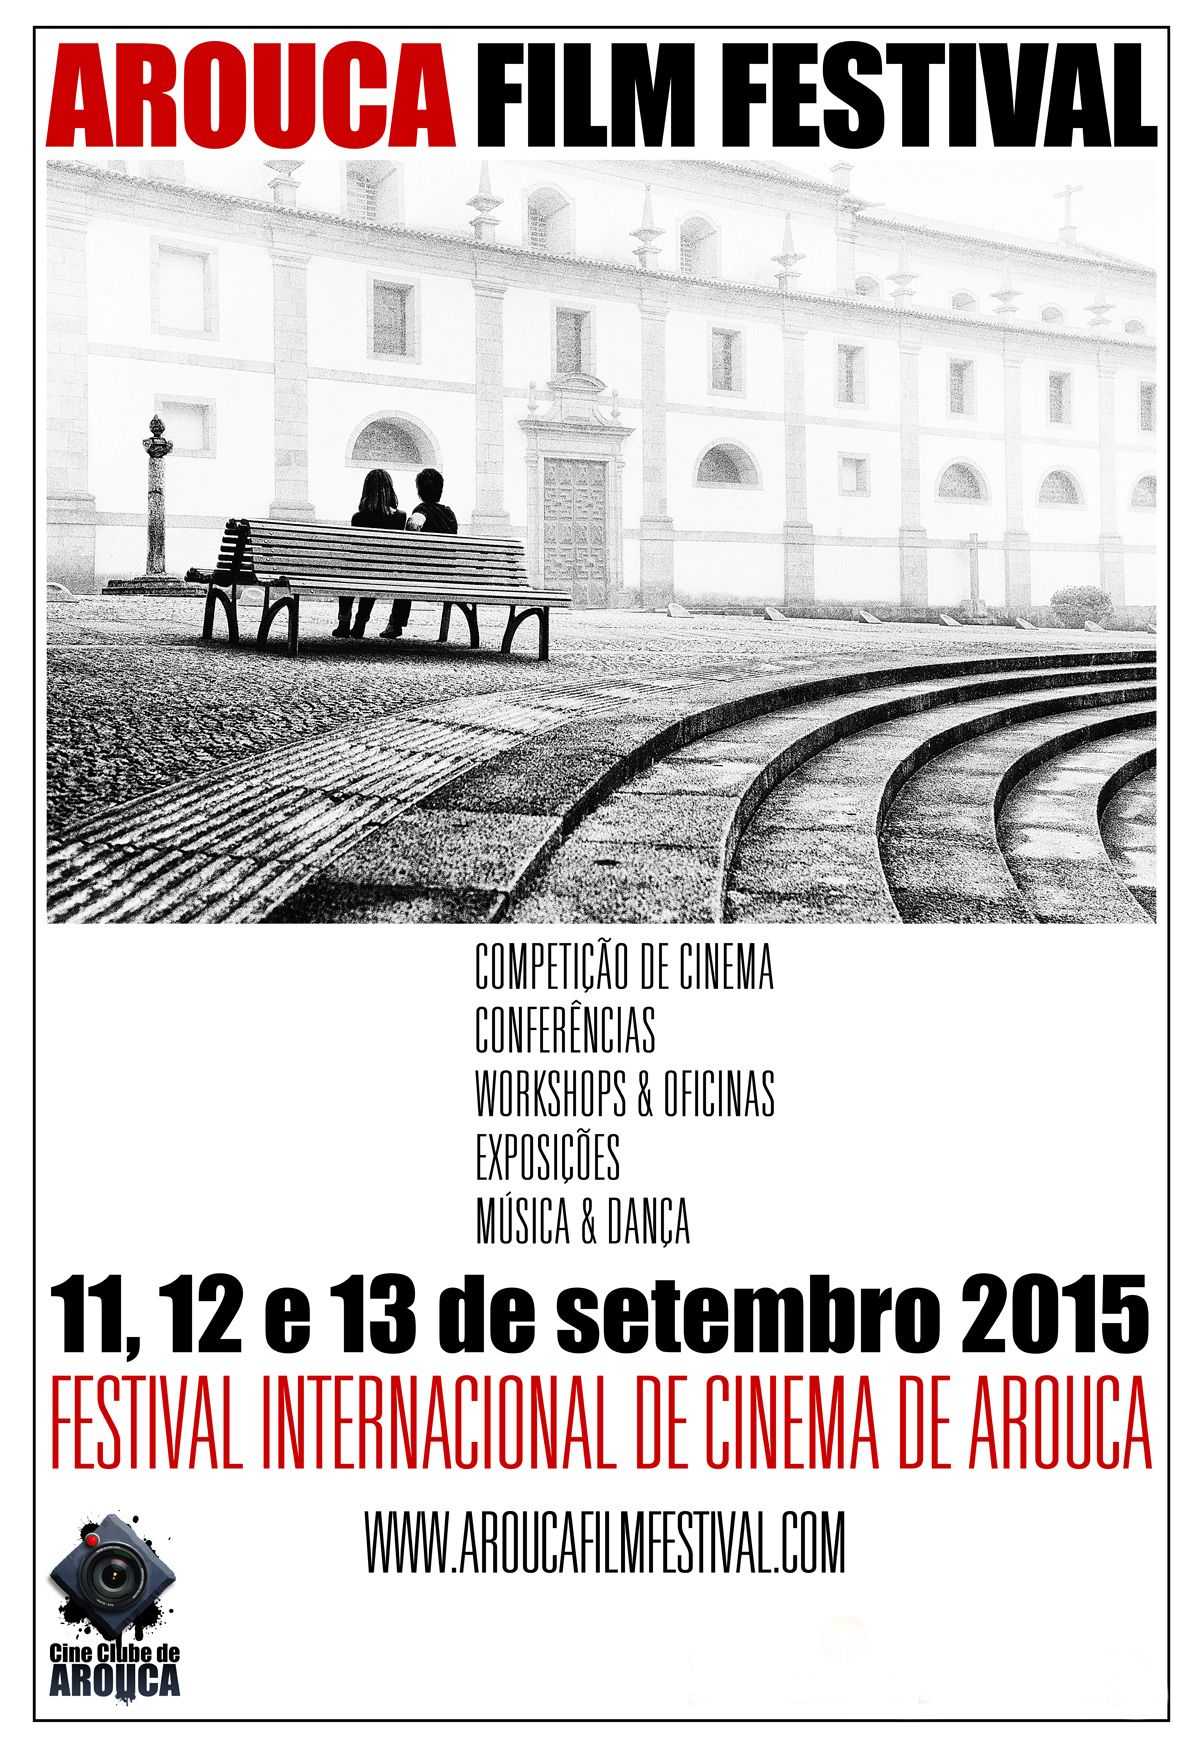 Arouca Film Festival 2015_2